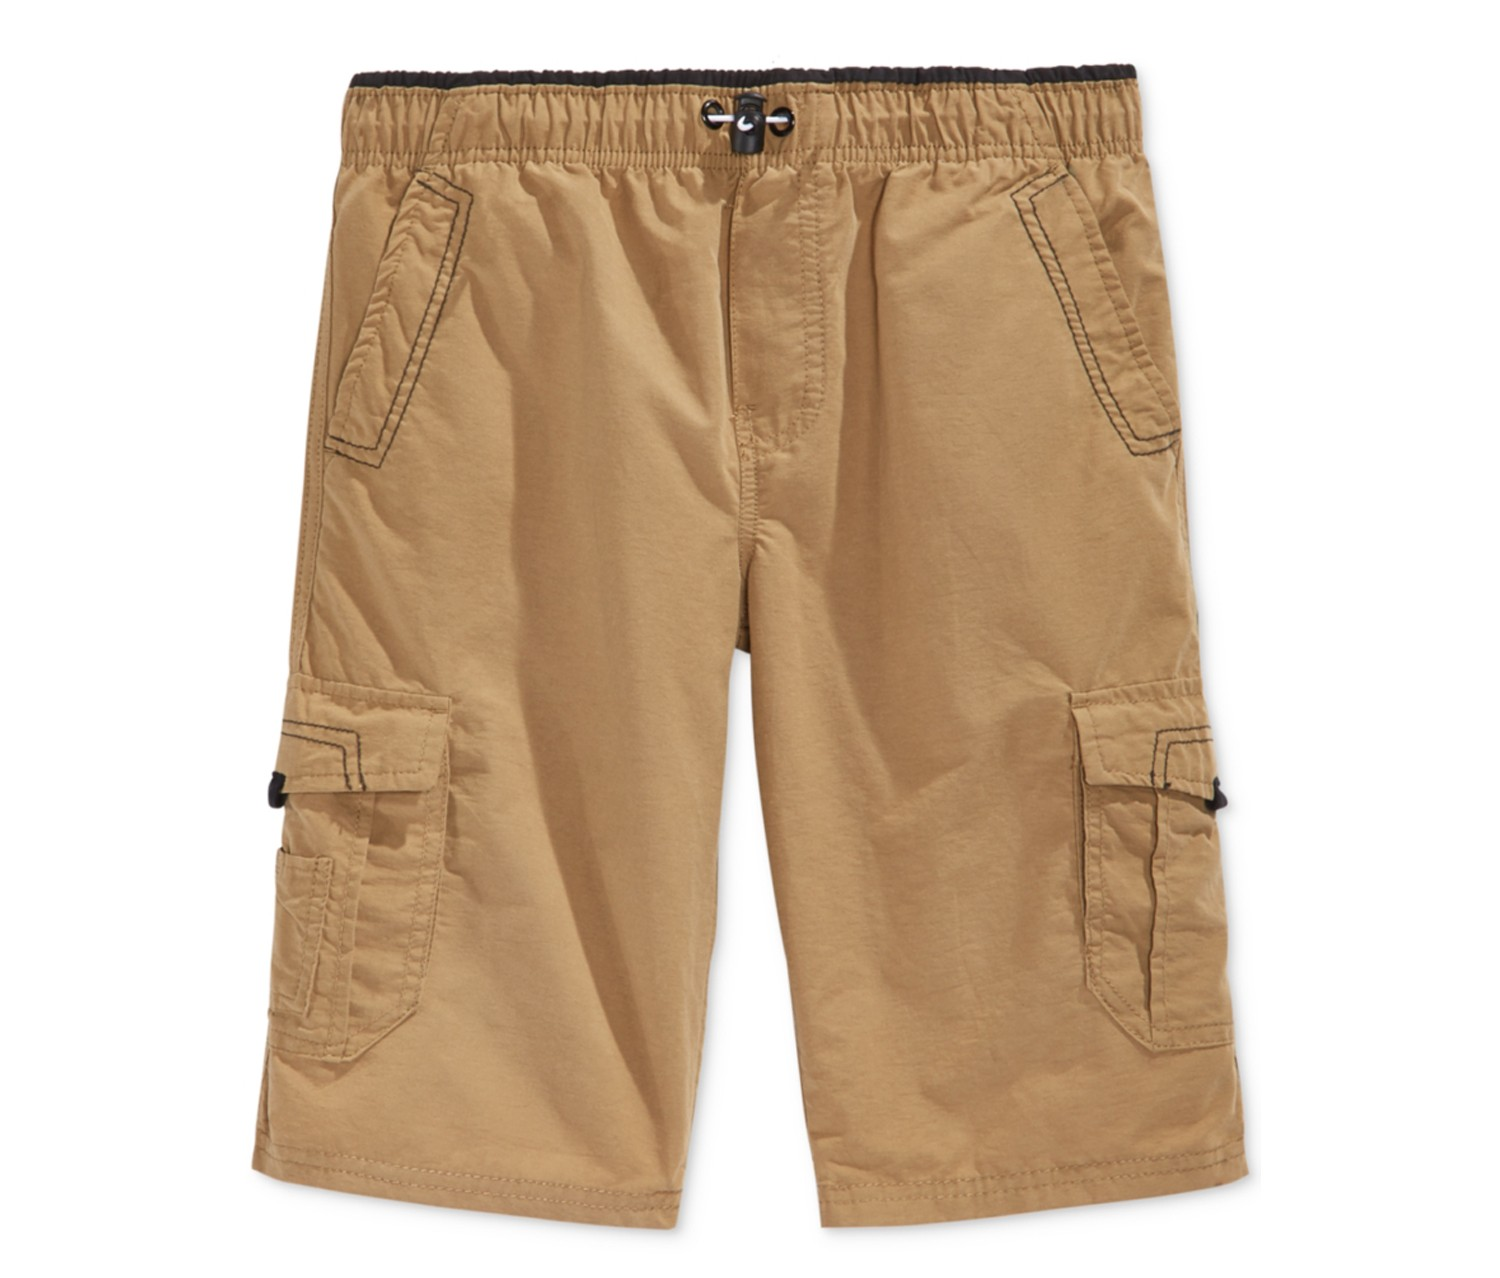 d980b8ba28 Shop UNIVIBE Univibe Boys Scout Cargo Shorts Khaki, Dull Gold for ...